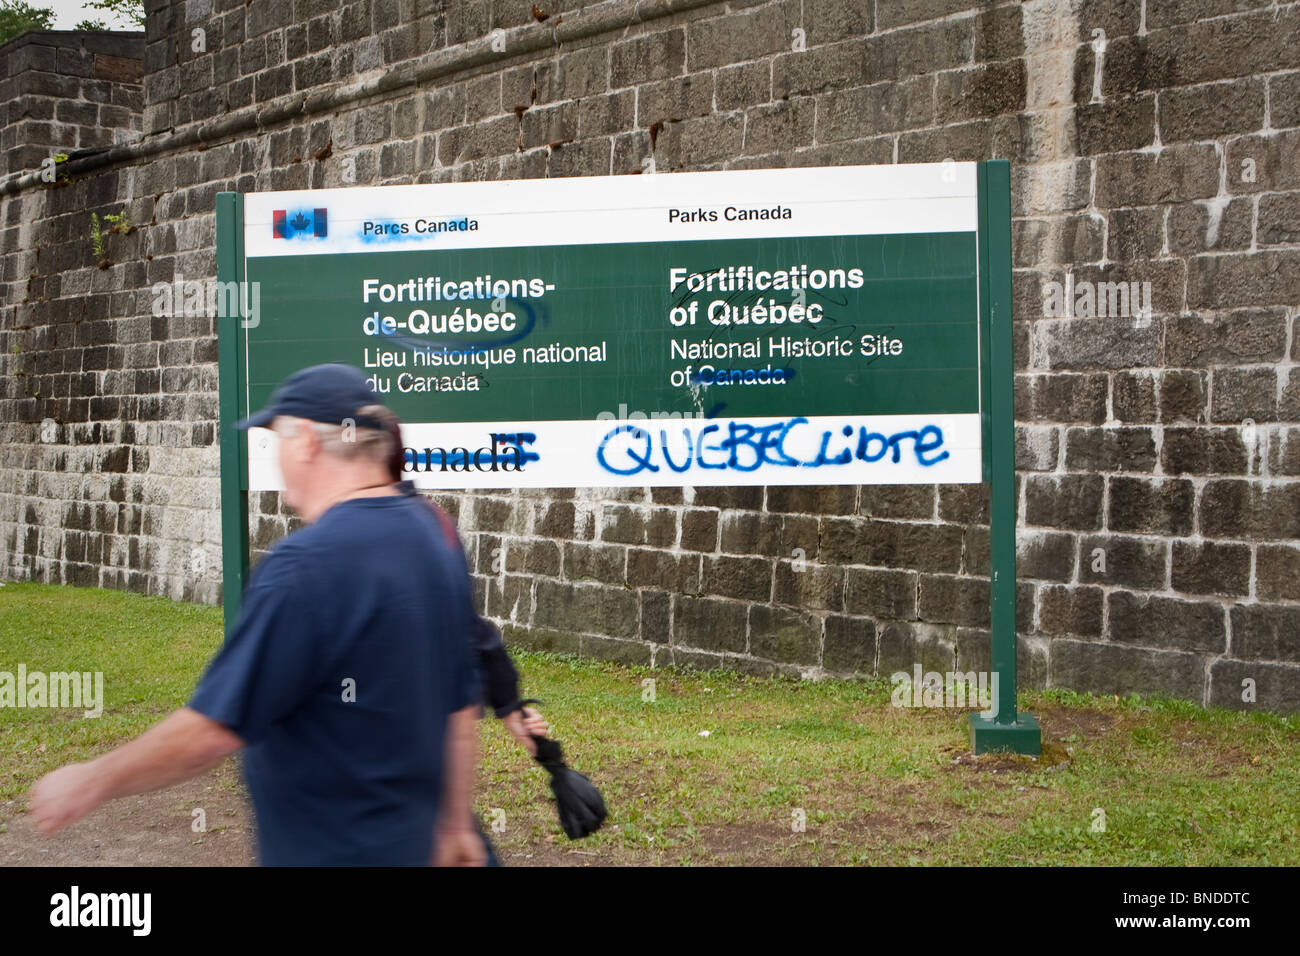 2 persons walk by a board vandalized by Quebec separatists in Quebec City - Stock Image